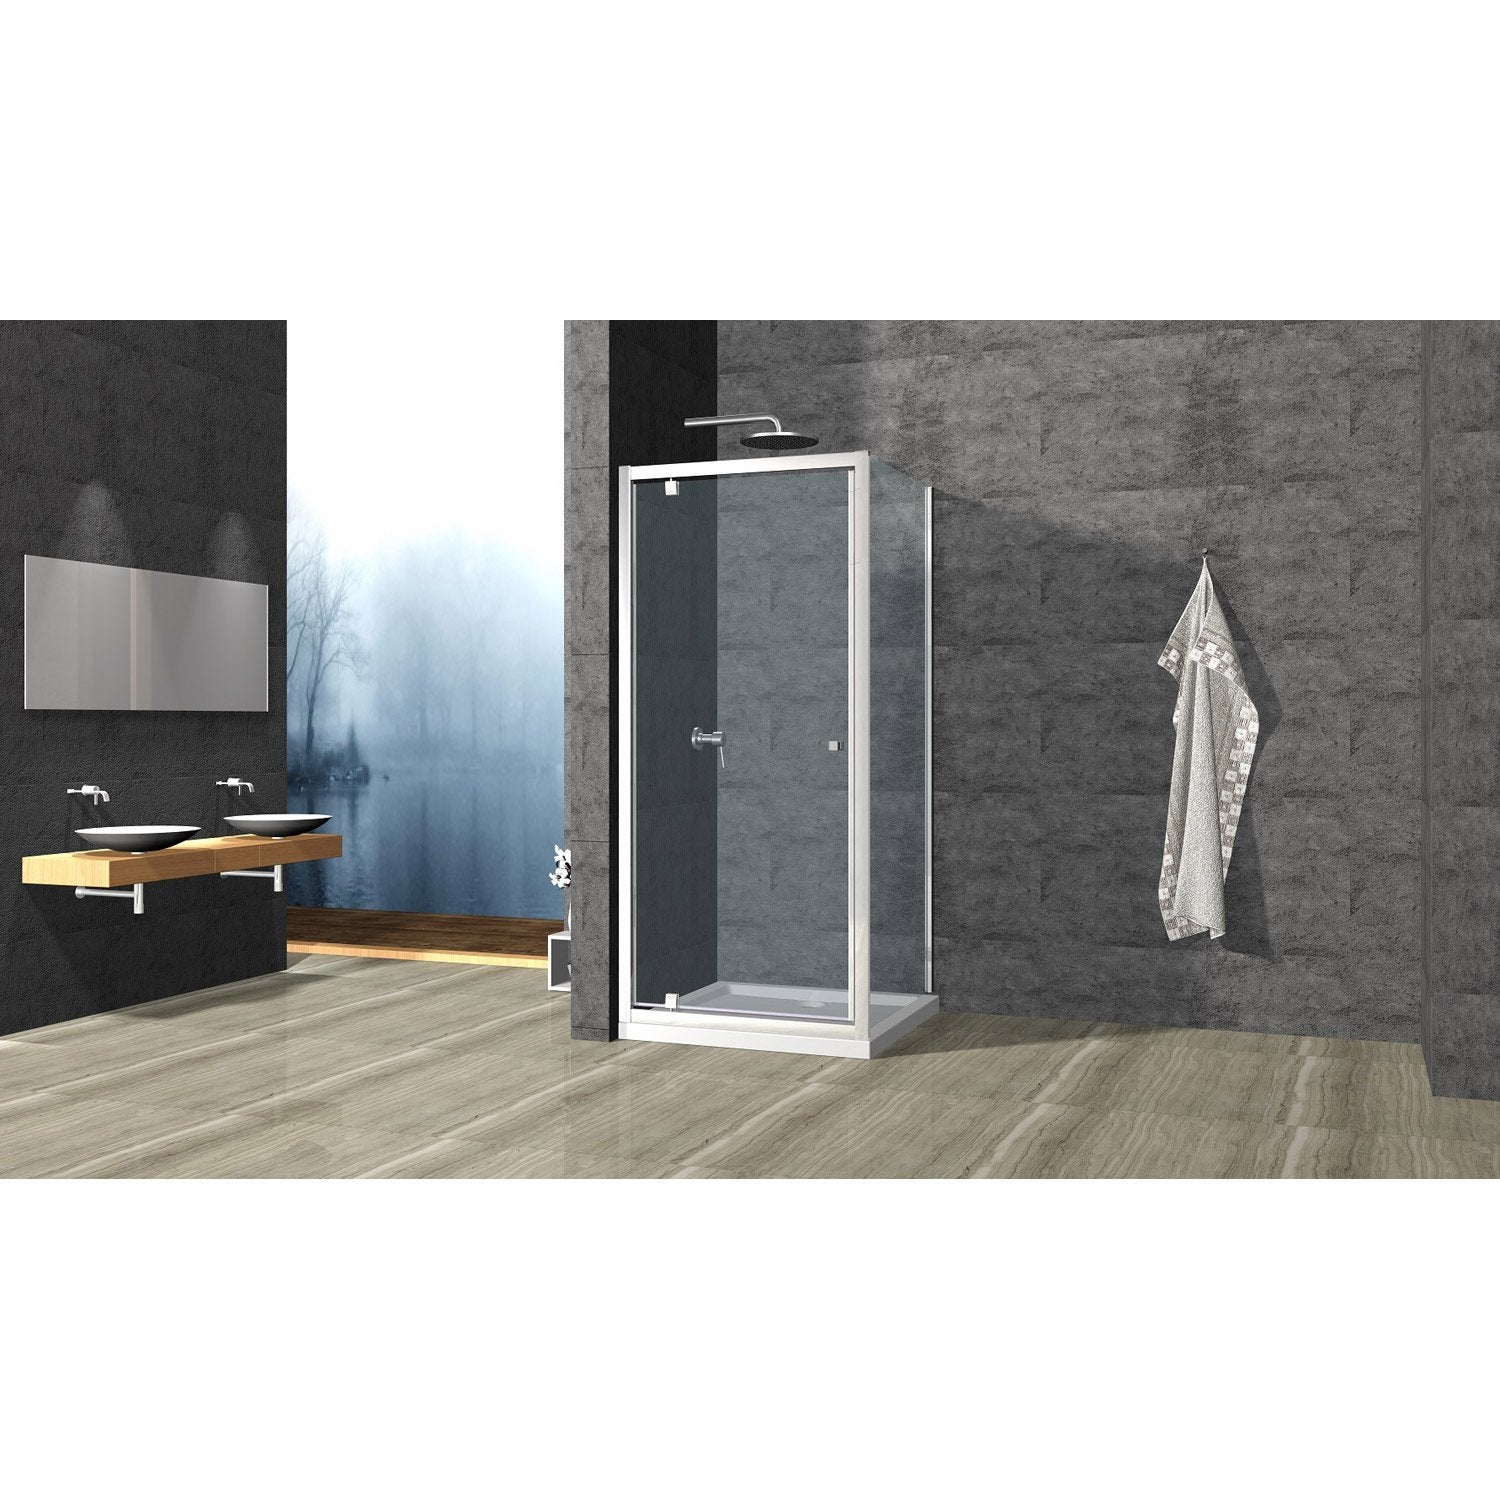 porte de douche pivotante cm transparent dado leroy merlin. Black Bedroom Furniture Sets. Home Design Ideas